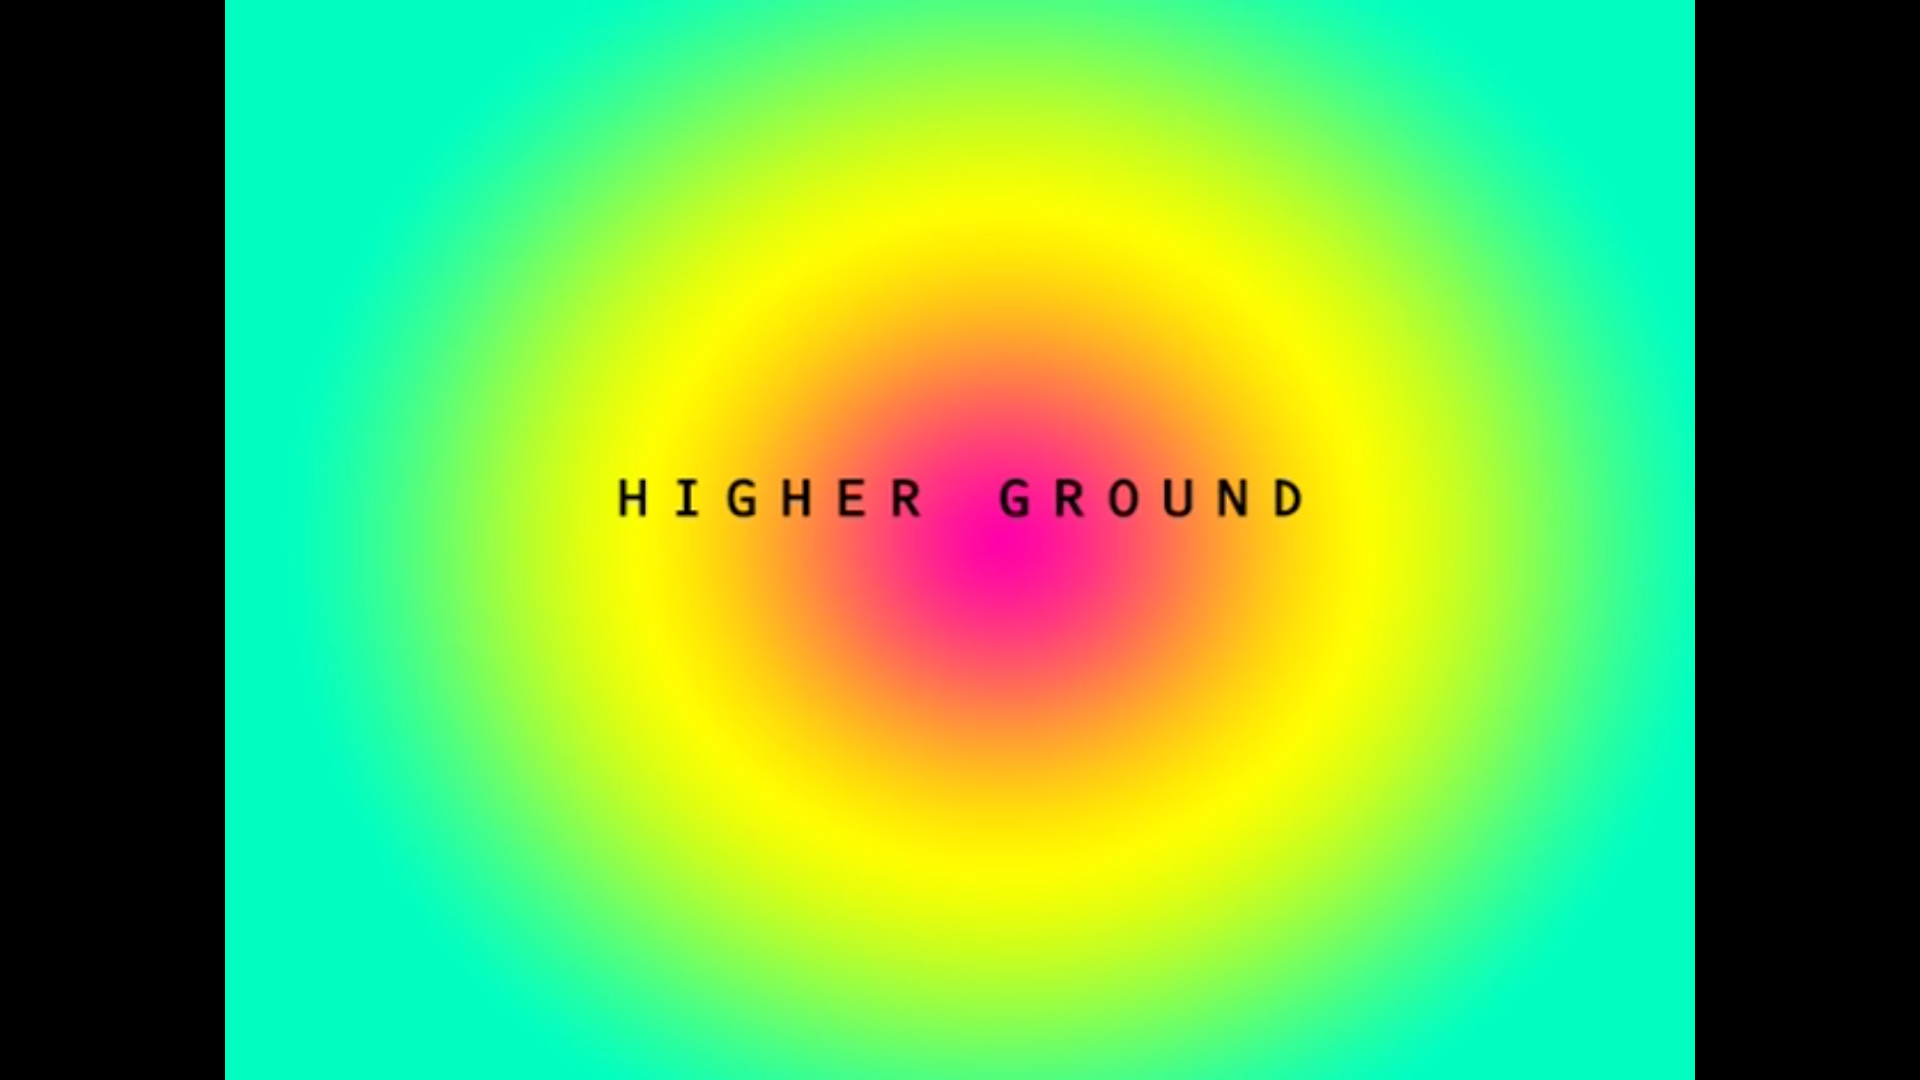 higher-ground-andrew-rosinski-1